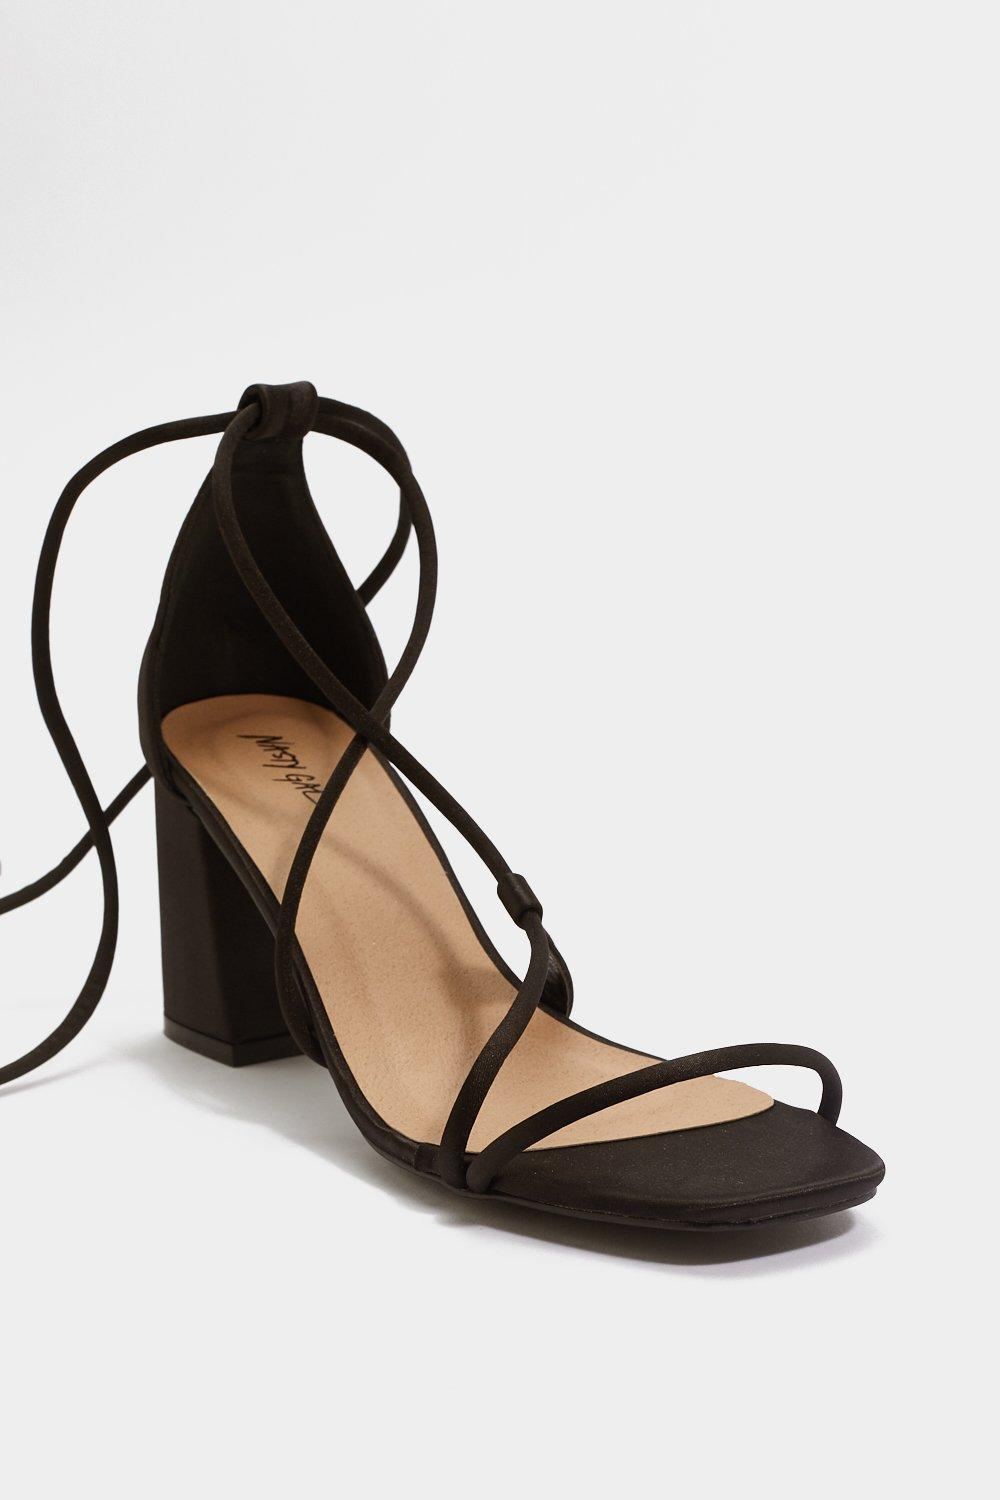 45233944b62a Womens Black Strapped in Wrap Heels. Hover to zoom